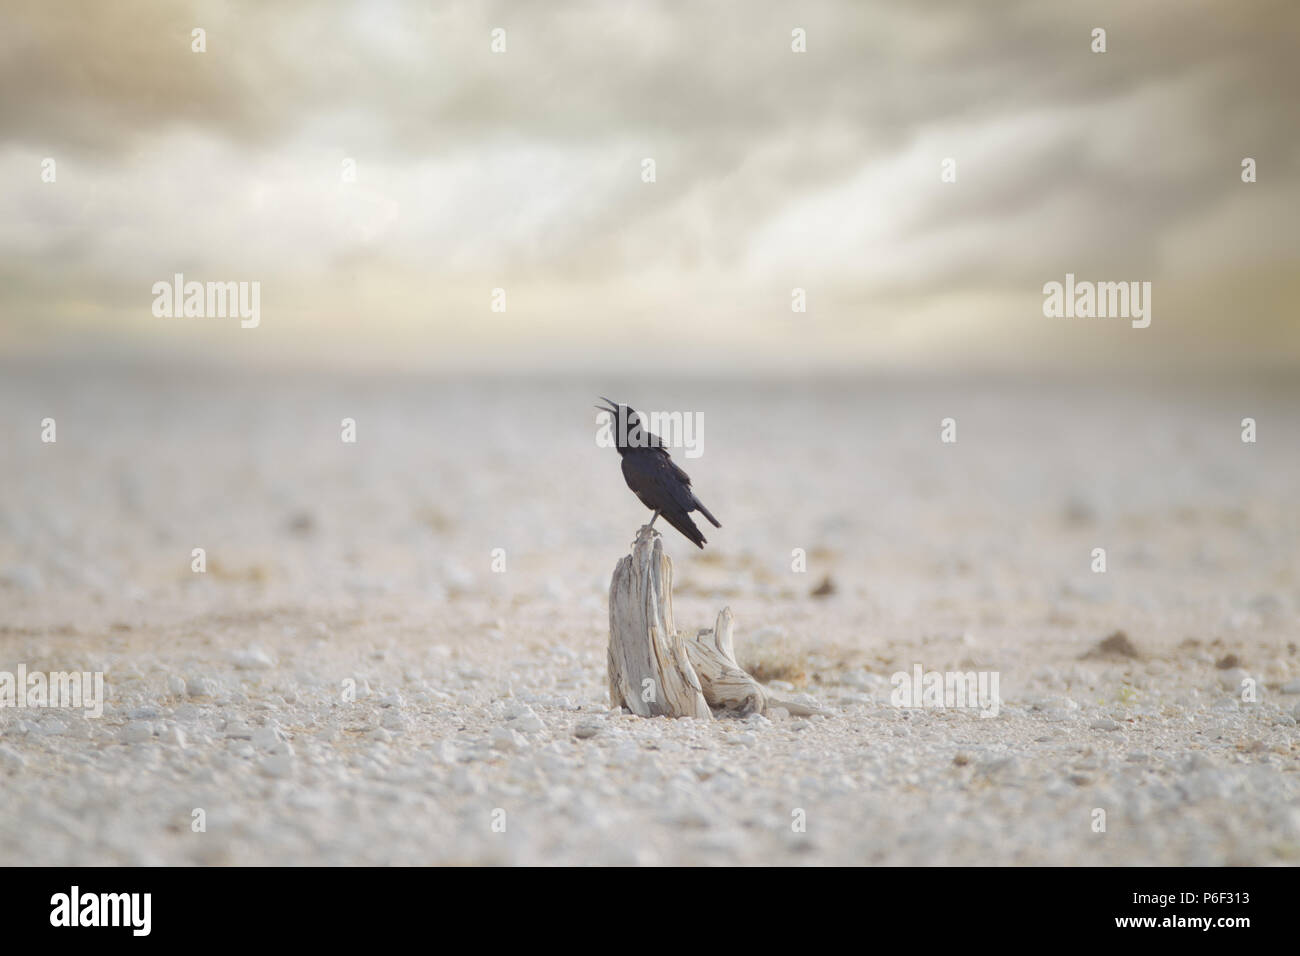 Black raven in Etosha as the storm approaches - Stock Image